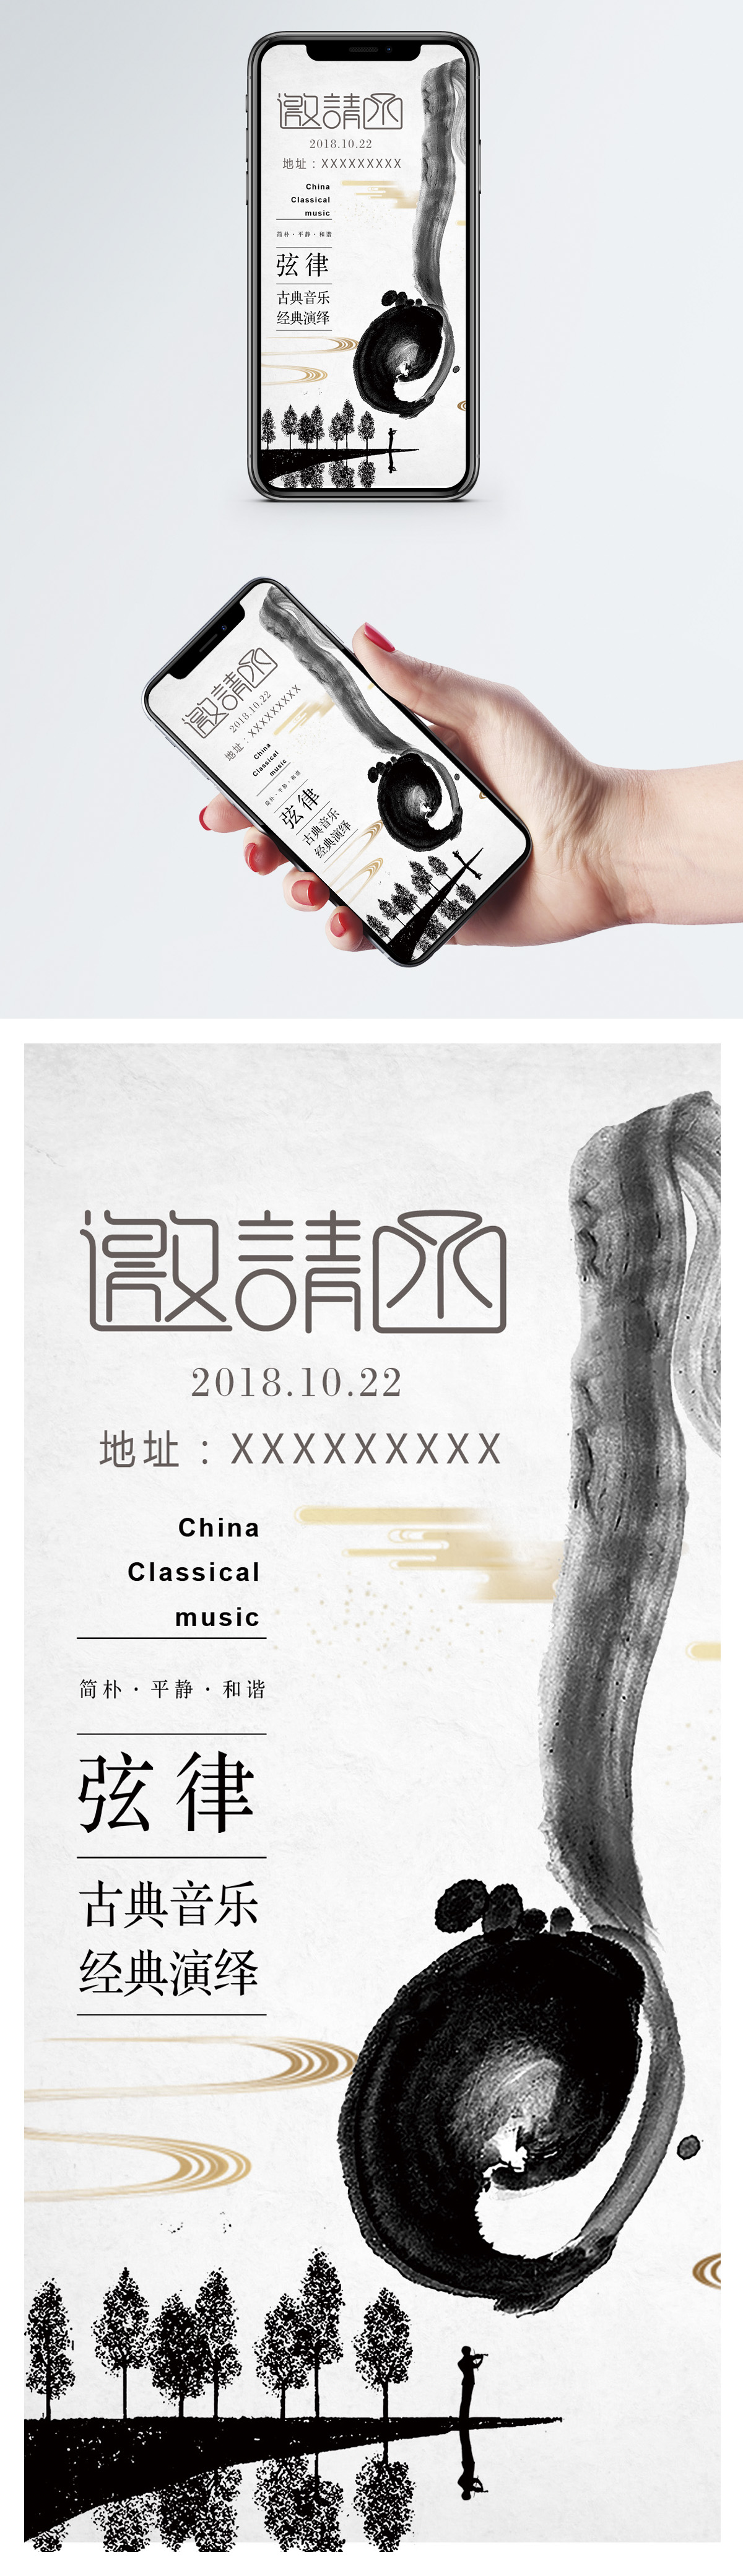 Invitation Letter Of The Chinese Wind Concert Imagepicture